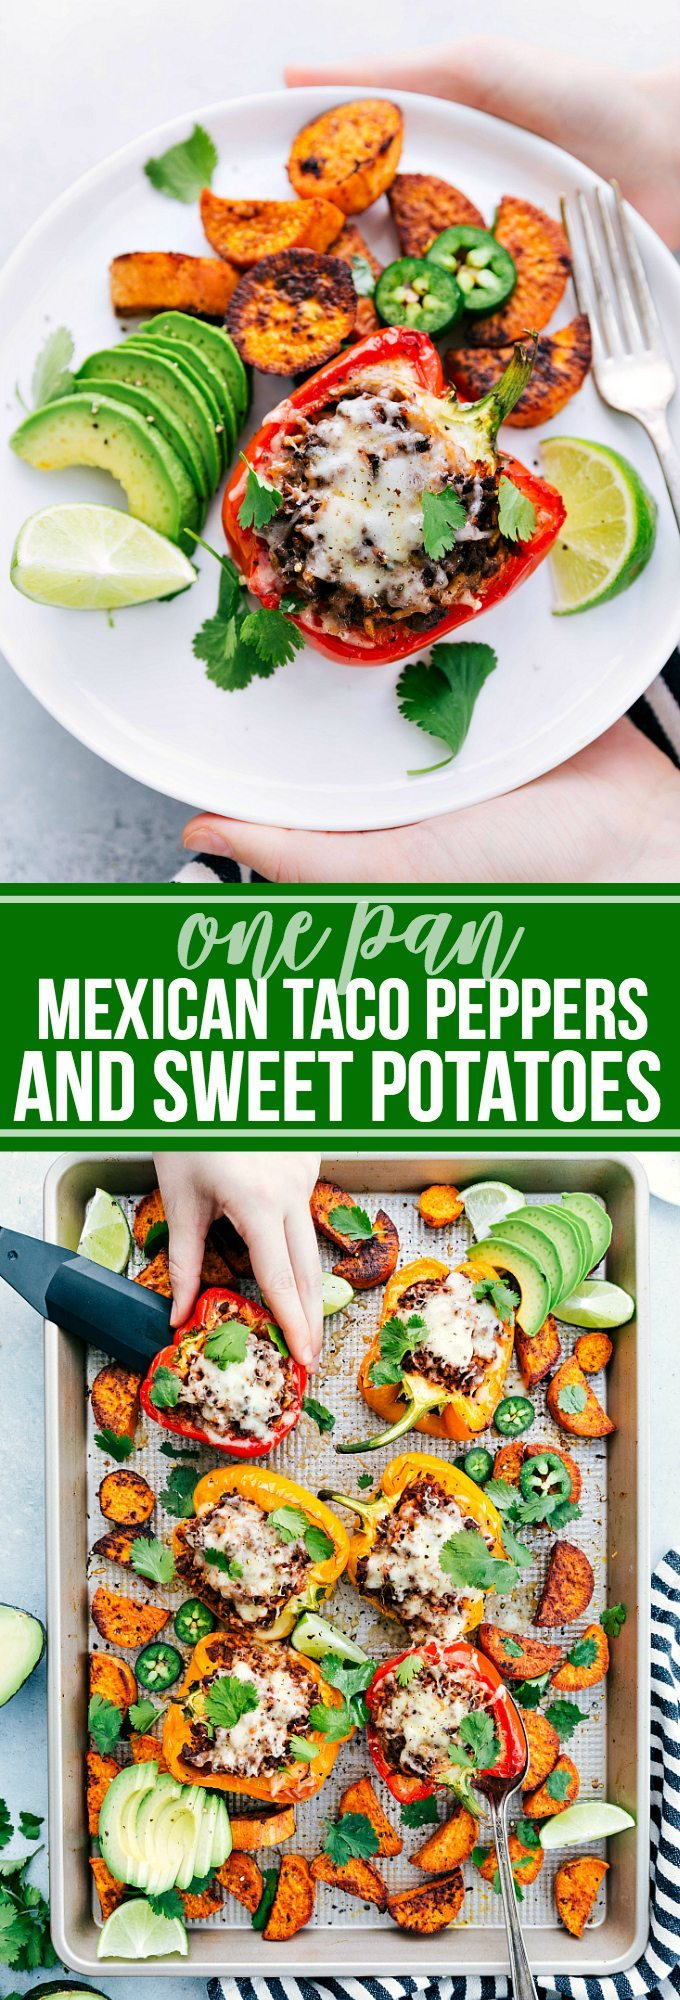 ONE PAN Mexican Taco Stuffed Sweet Peppers and sweet potatoes! Easy, delicious, and family friendly! via chelseasmessyapron.com #peppers #onepan #mexican #taco #stuffed #peppers #veggies #healthy #easy #quick